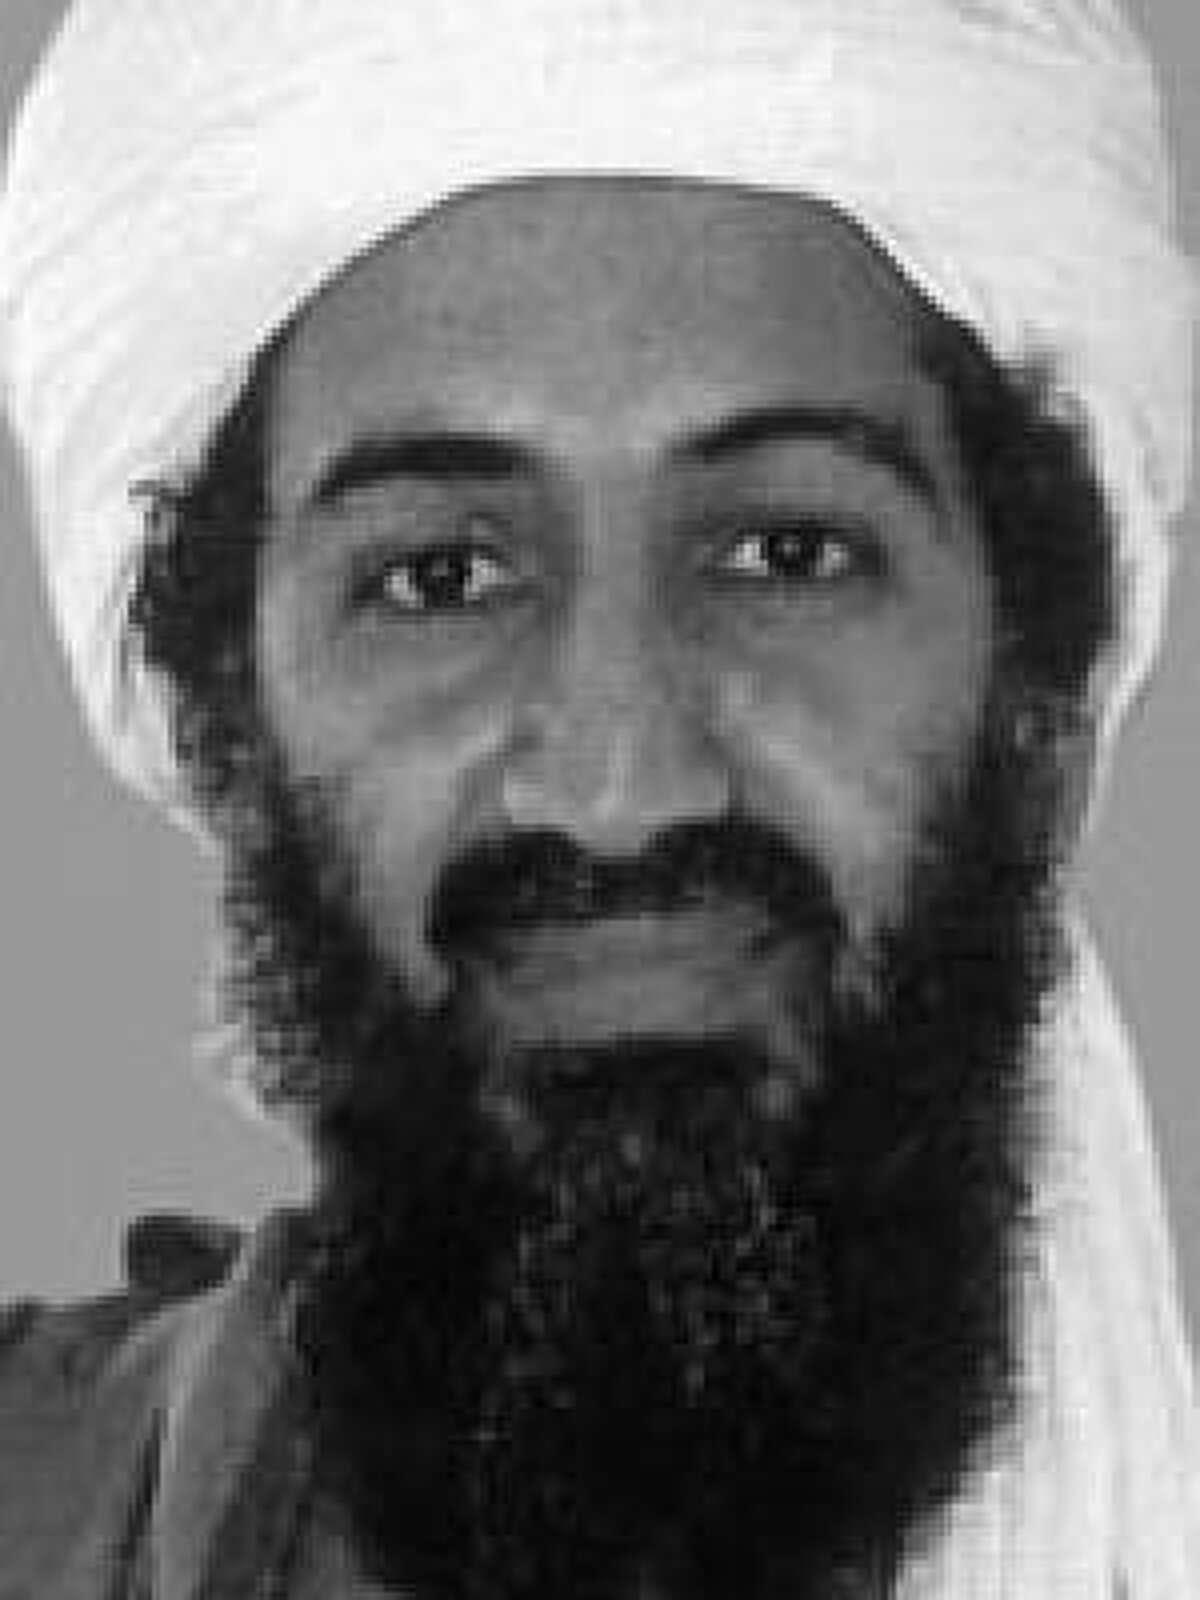 Osama bin Laden is wanted in connection with the bombings of U.S. embassies in Tanzania and Kenya that killed more than 200.